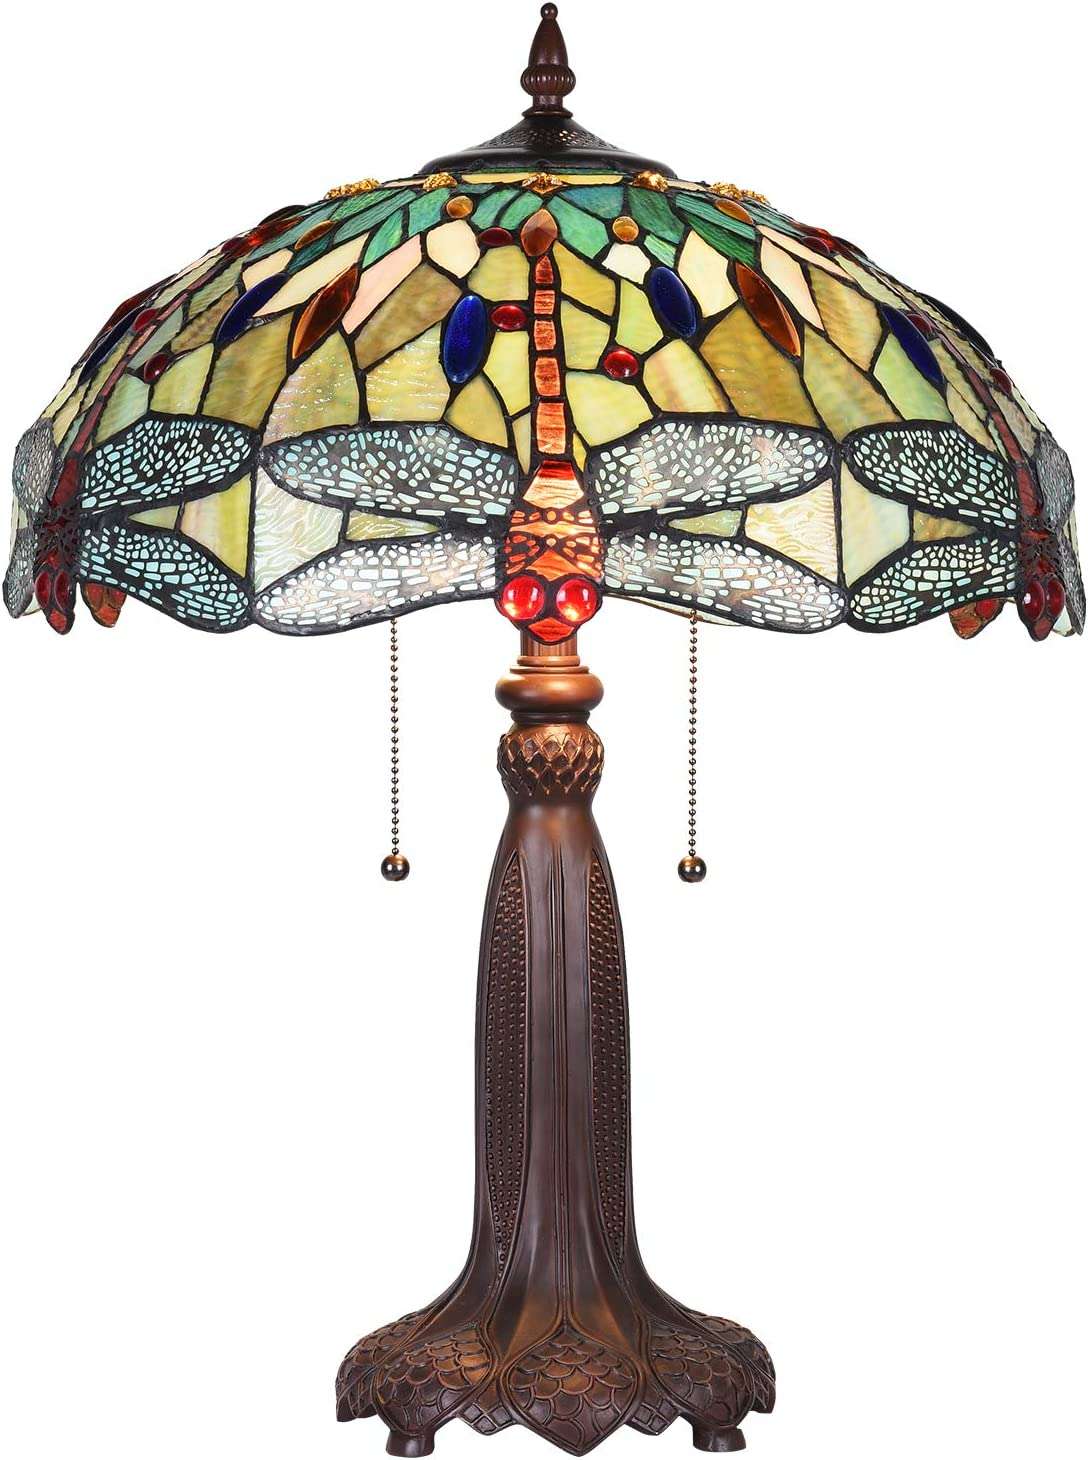 "Tiffany Table Lamp, Capulina Handcrafted 18.3"" Stained Glass Antique Lamp Shades, Timeless Art Stunning Stained Glass Table Lamp, Enhance Home, Office, Desk, Entry, Living Room - Gothic Glass Styles"